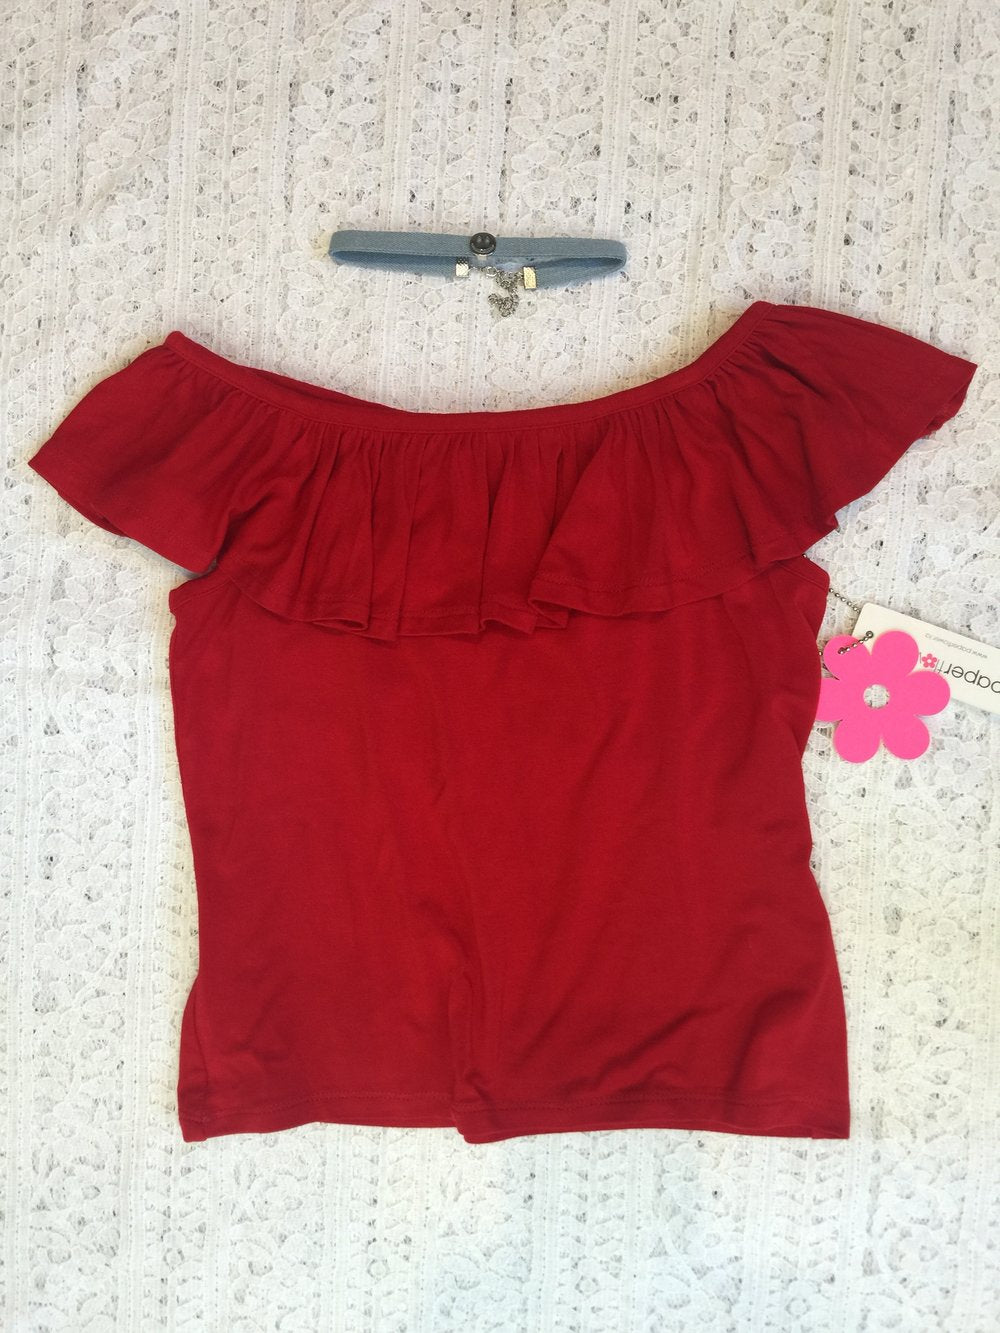 Limited Edition Chloe Ruffle Top